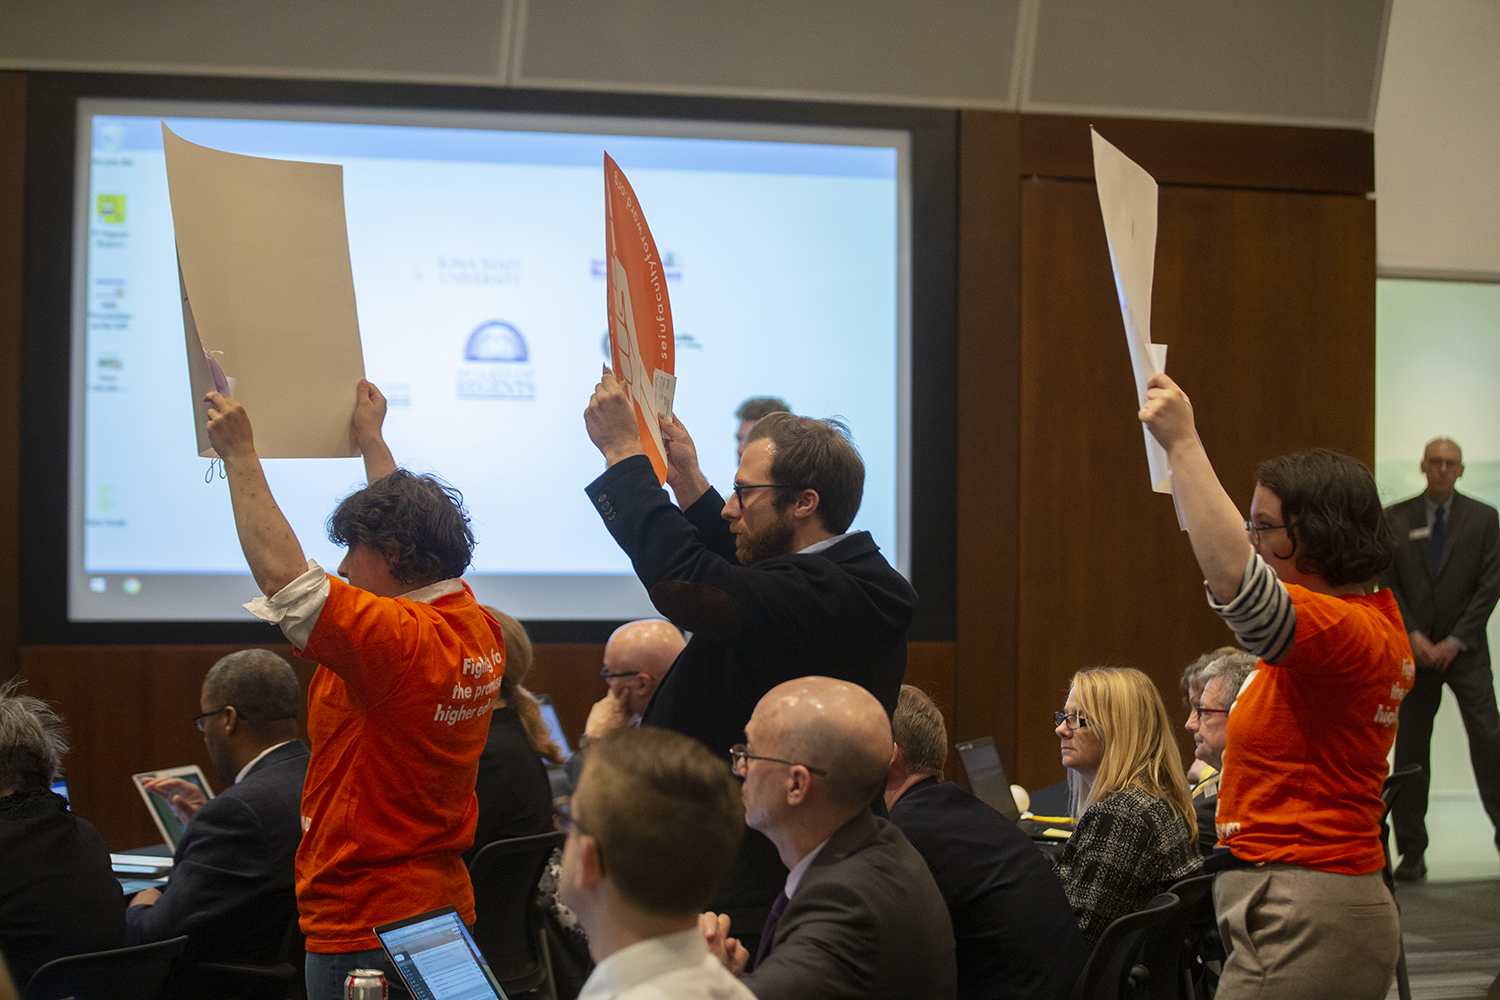 Faculty Forward members protest during the state Board of Regents meeting in the Levitt Center on Thursday, April 18, 2019.